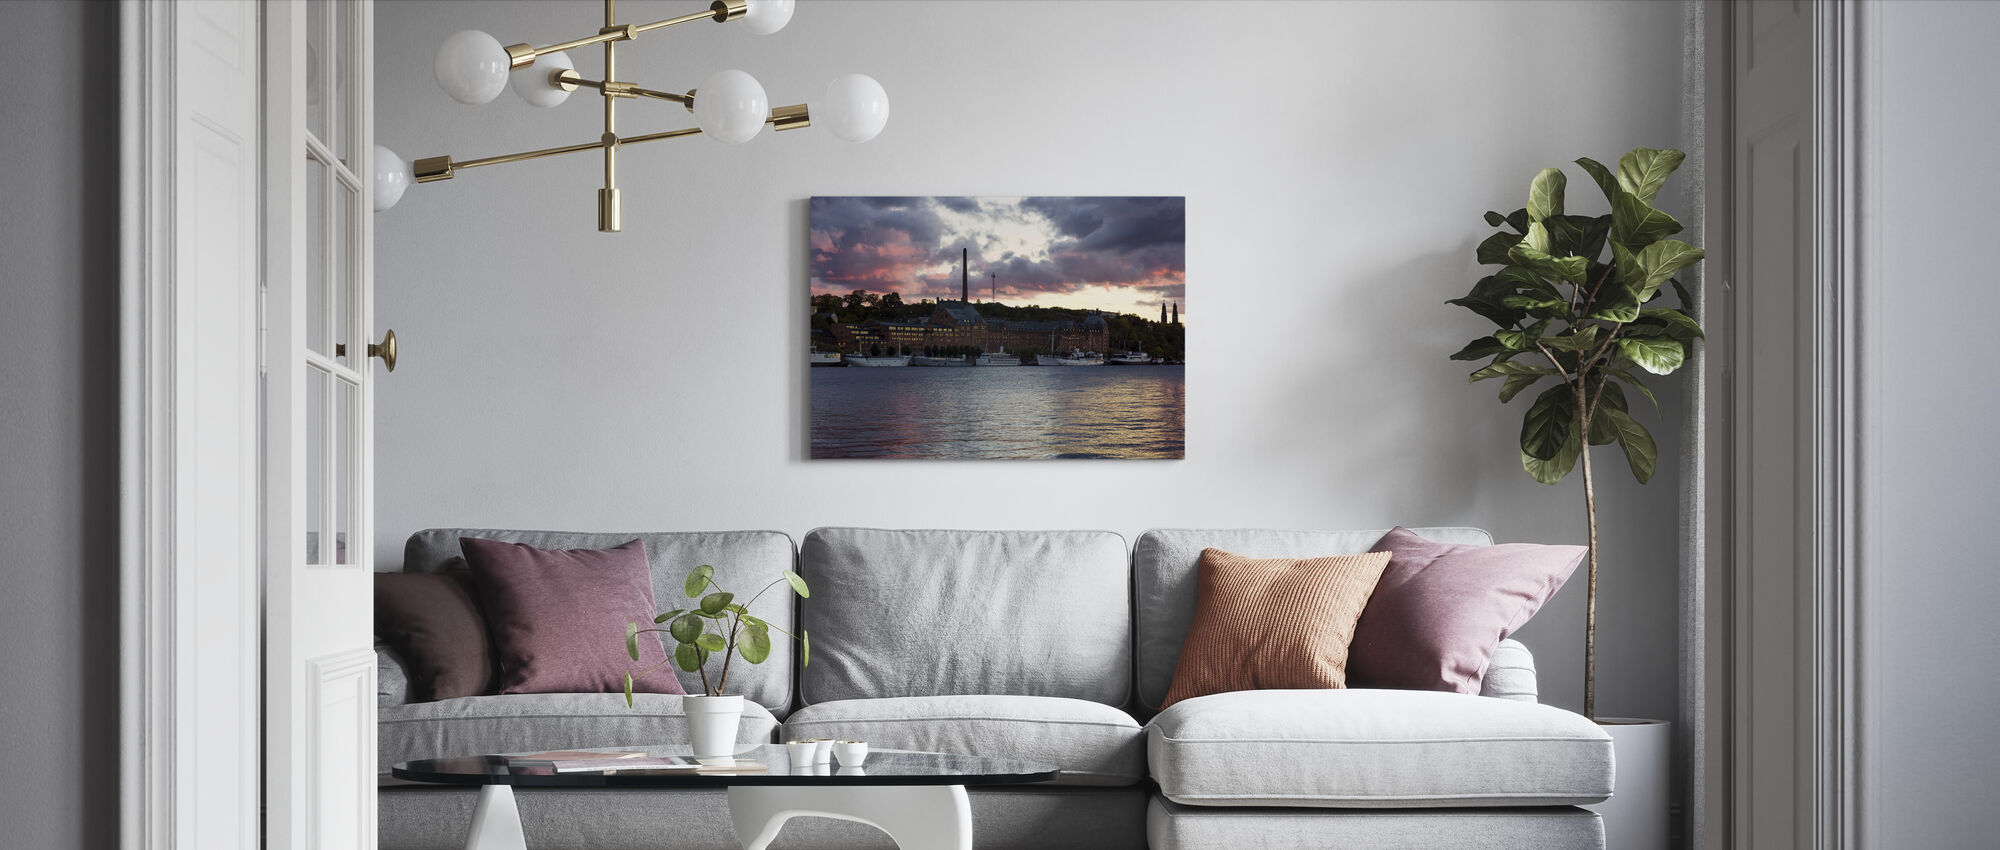 Riddarholmen in Stockholm - Canvas print - Living Room